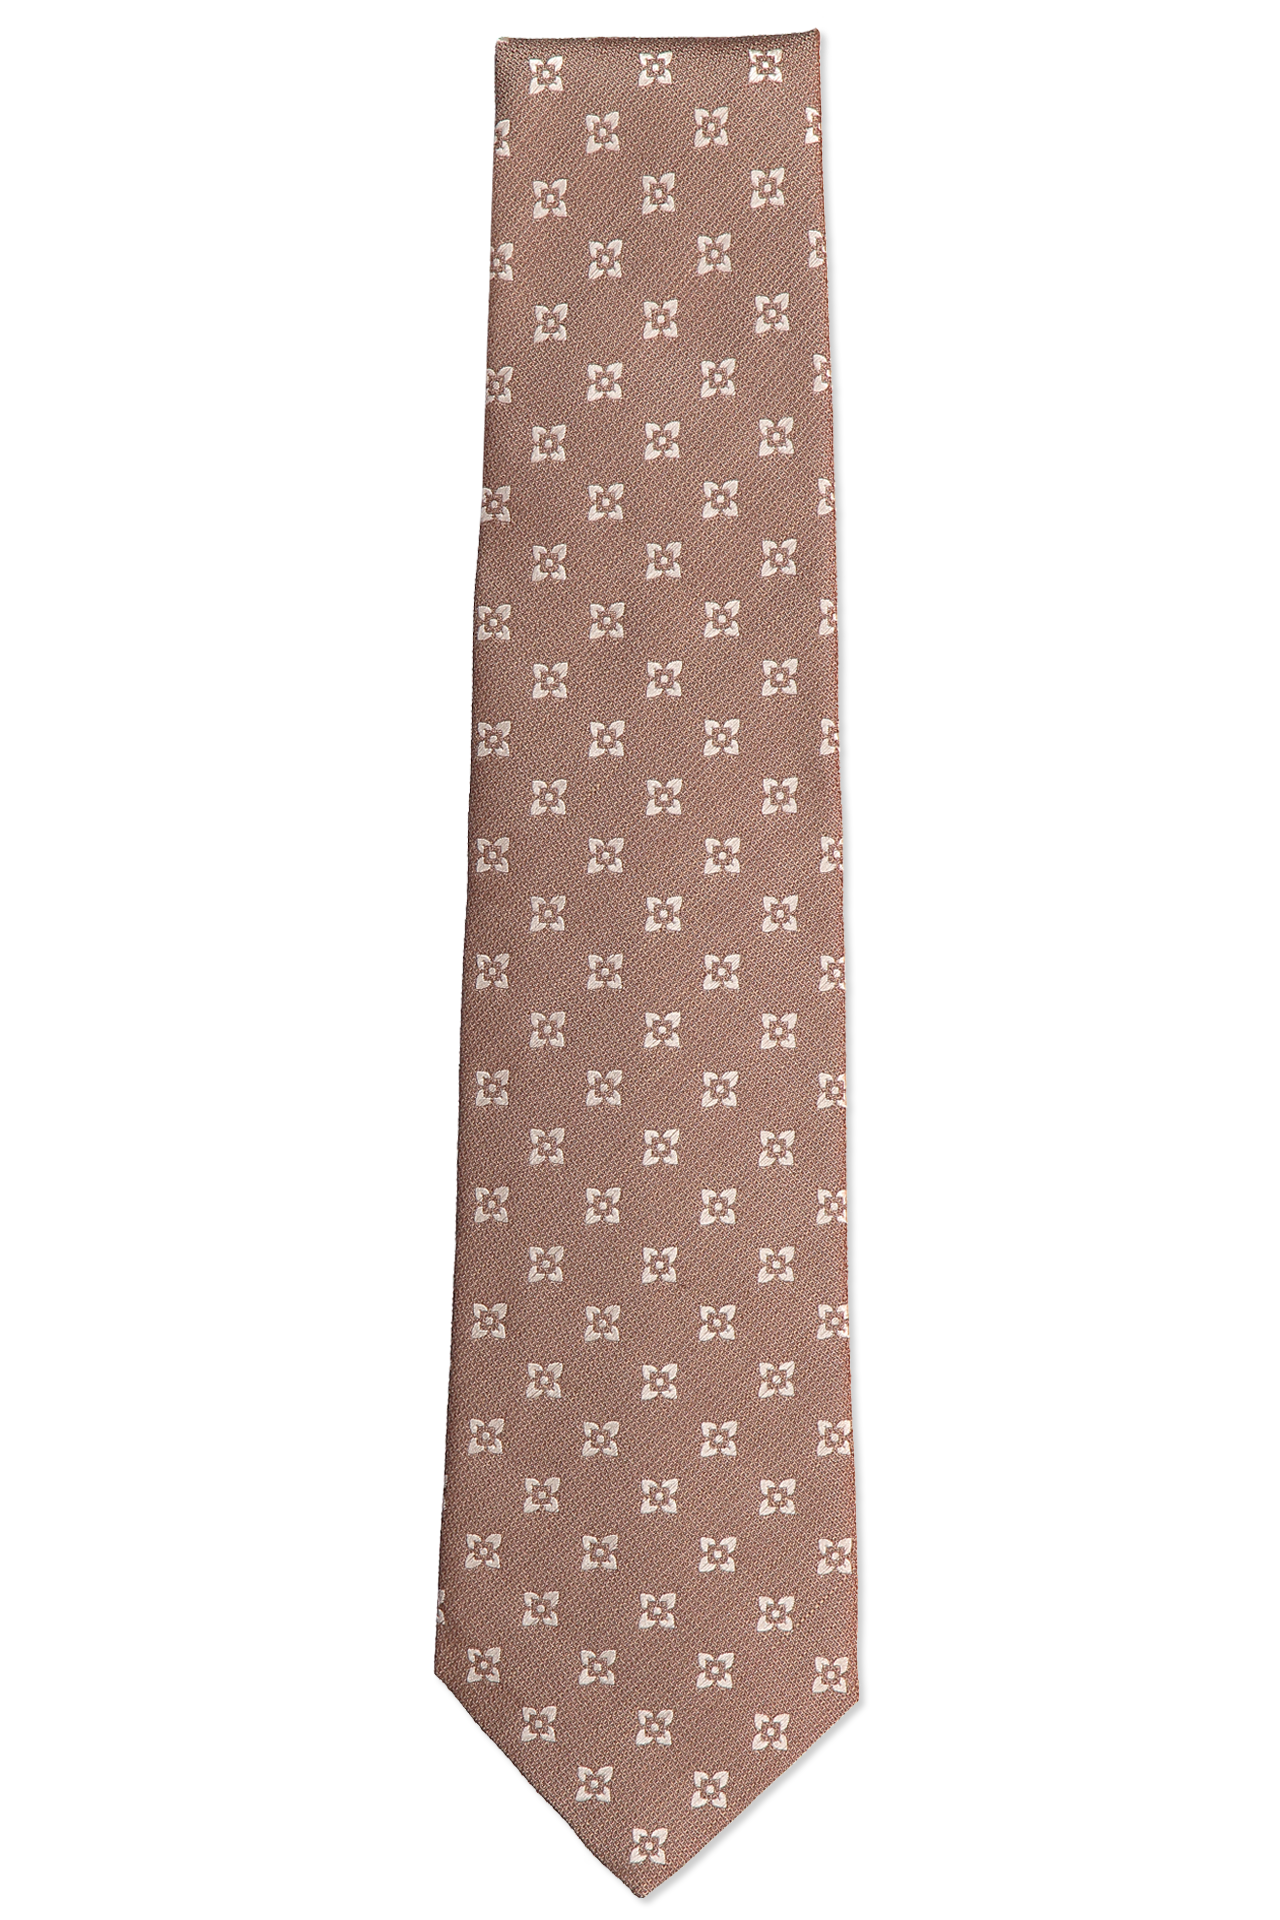 Tan Medallion Neck Tie